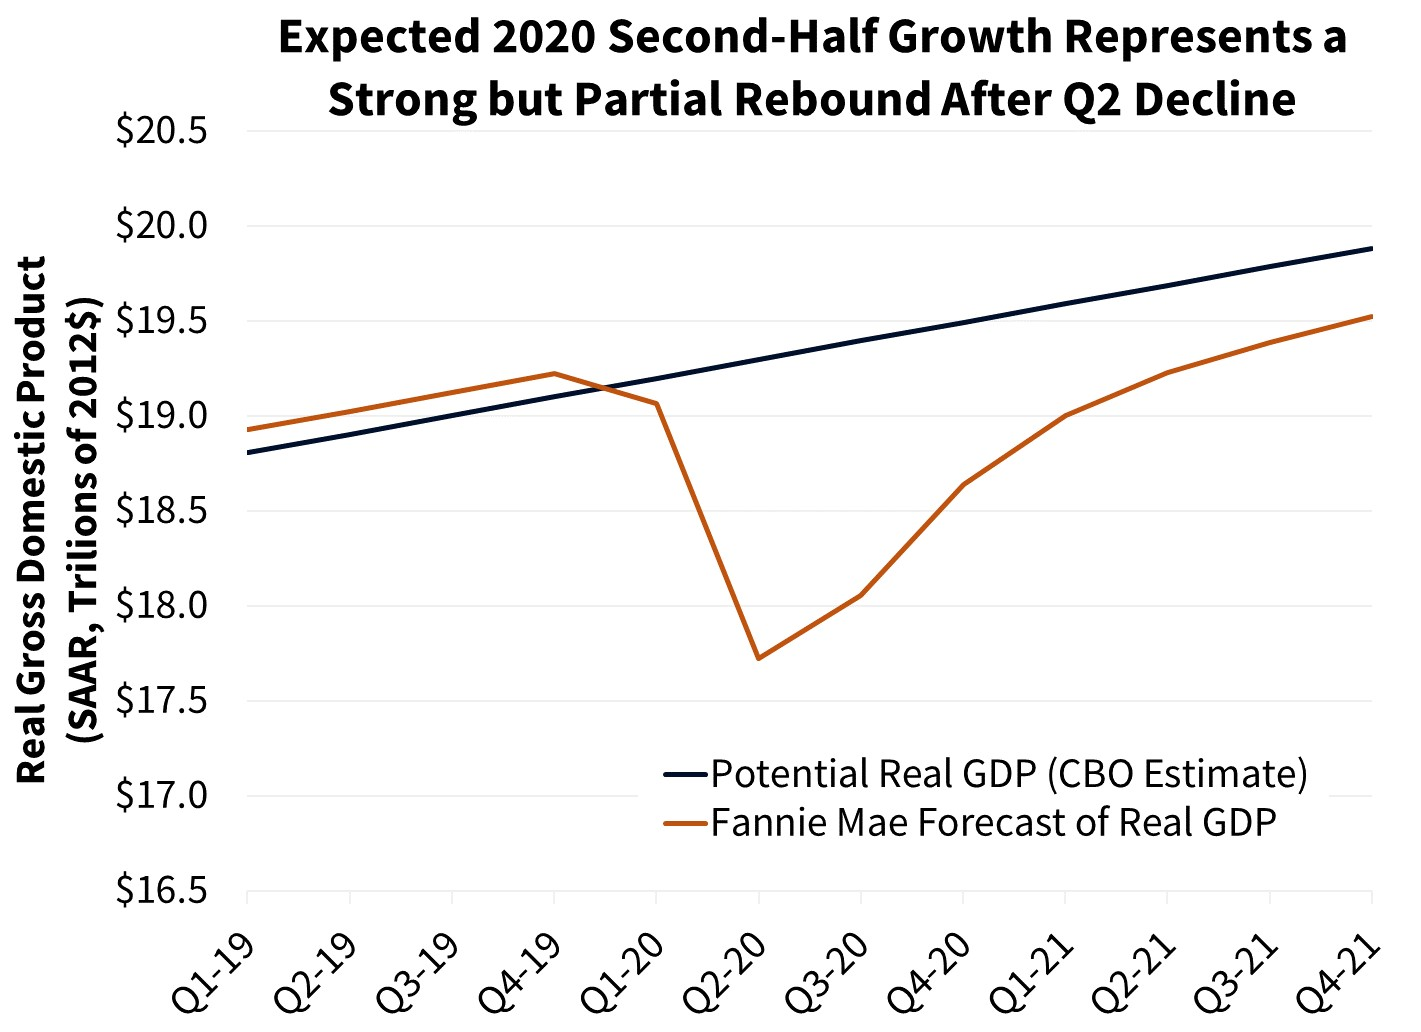 Expanded 2020 Second Half Growth Represents a Strong but Partial Rebound After Q2 Decline